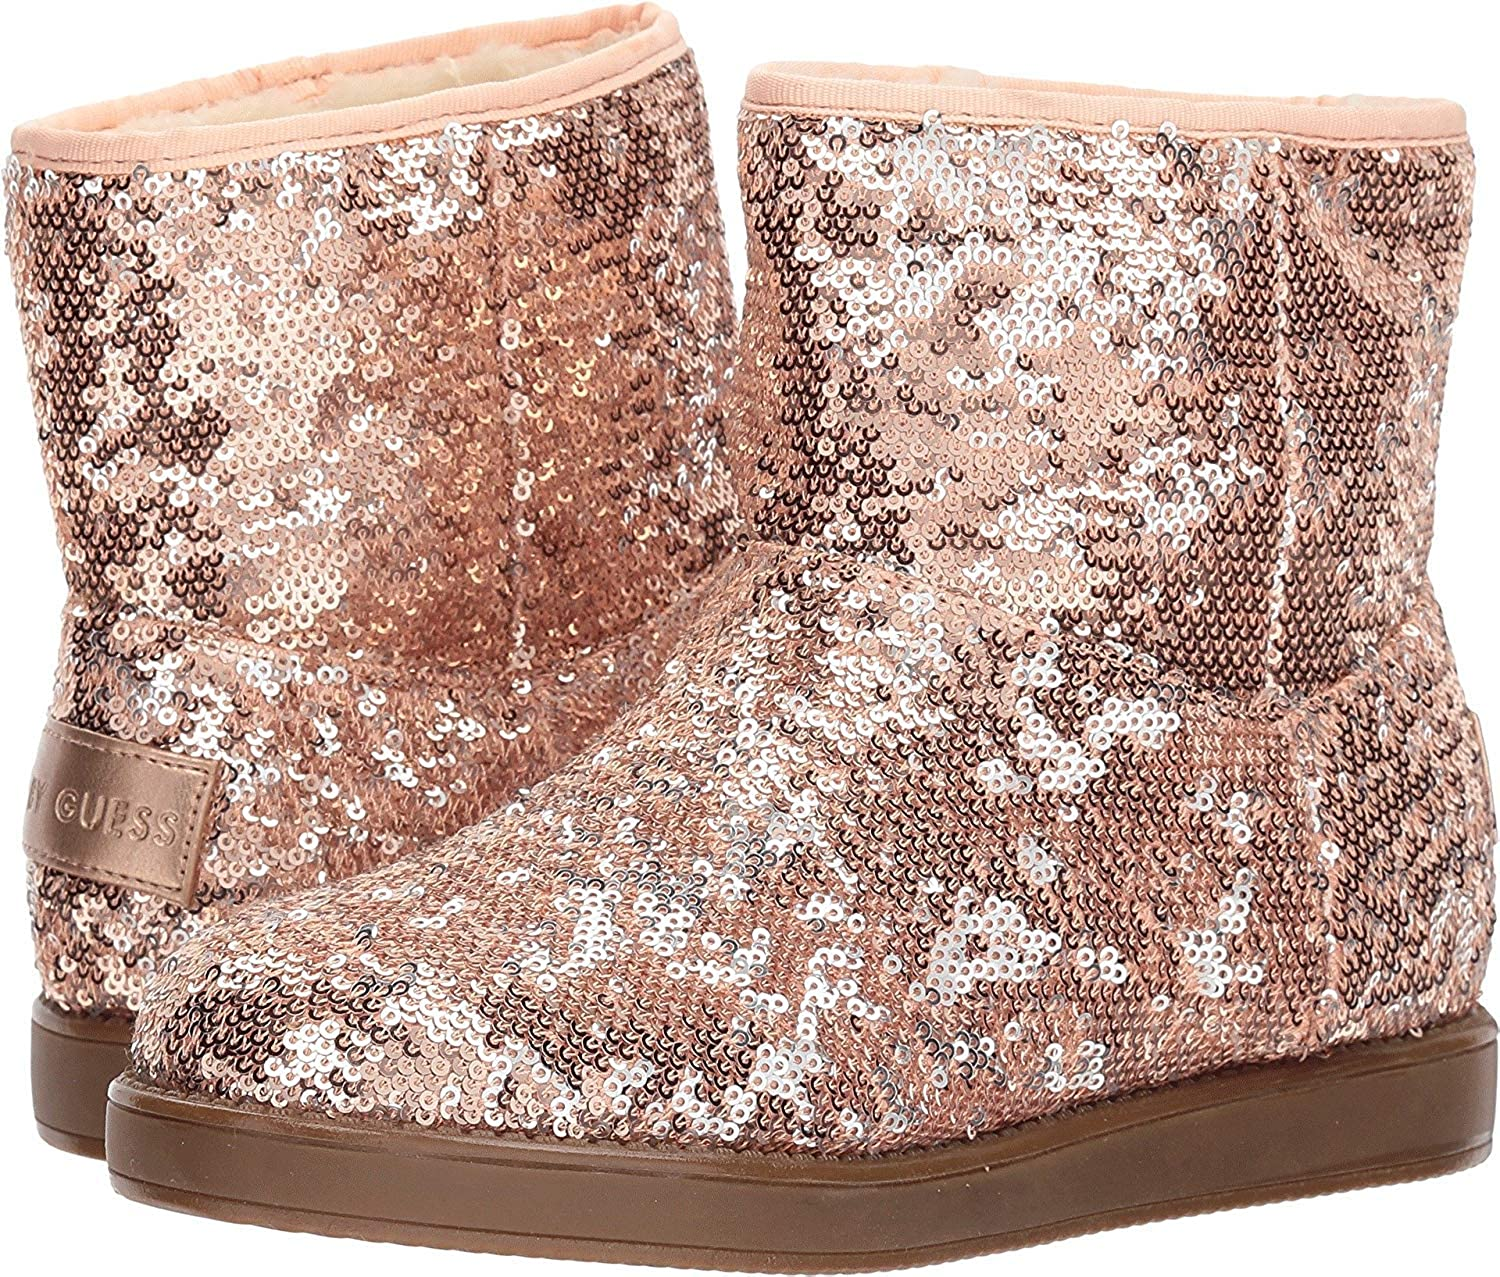 Size 9.0 Pink Sequins G By Guess Womens Asella Fabric Closed Toe Ankle Fashion